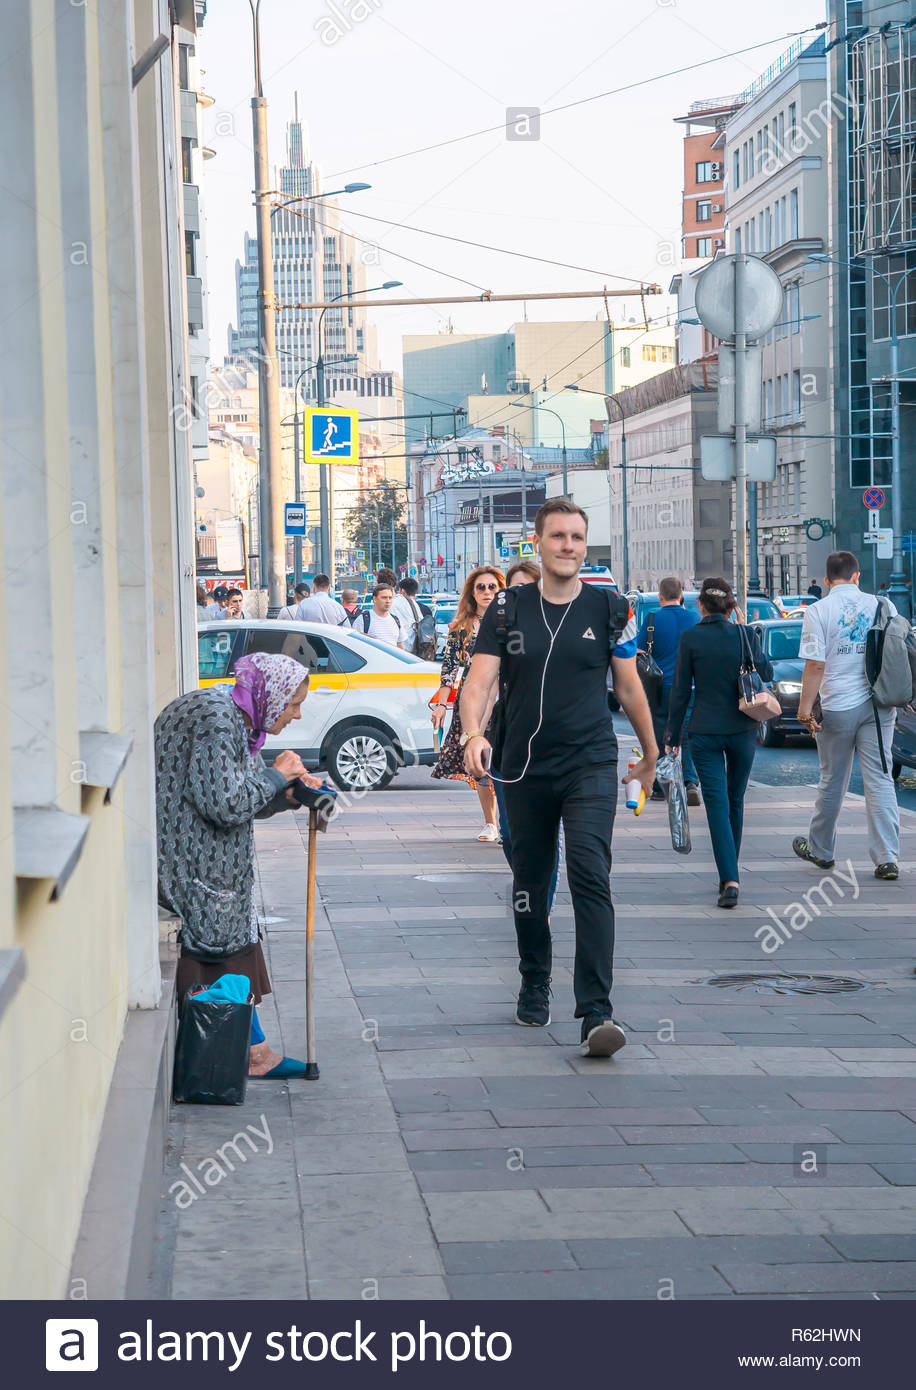 Moscow, Russia - September 6, 2018: Elderly woman asks for alms from passersby on the street. Retiree standing bent over with a cane cross oneself and asks for a money from people . Loneliness, poverty and social exclusion. People indifferently walk pass by old woman begging for bread - Stock Image